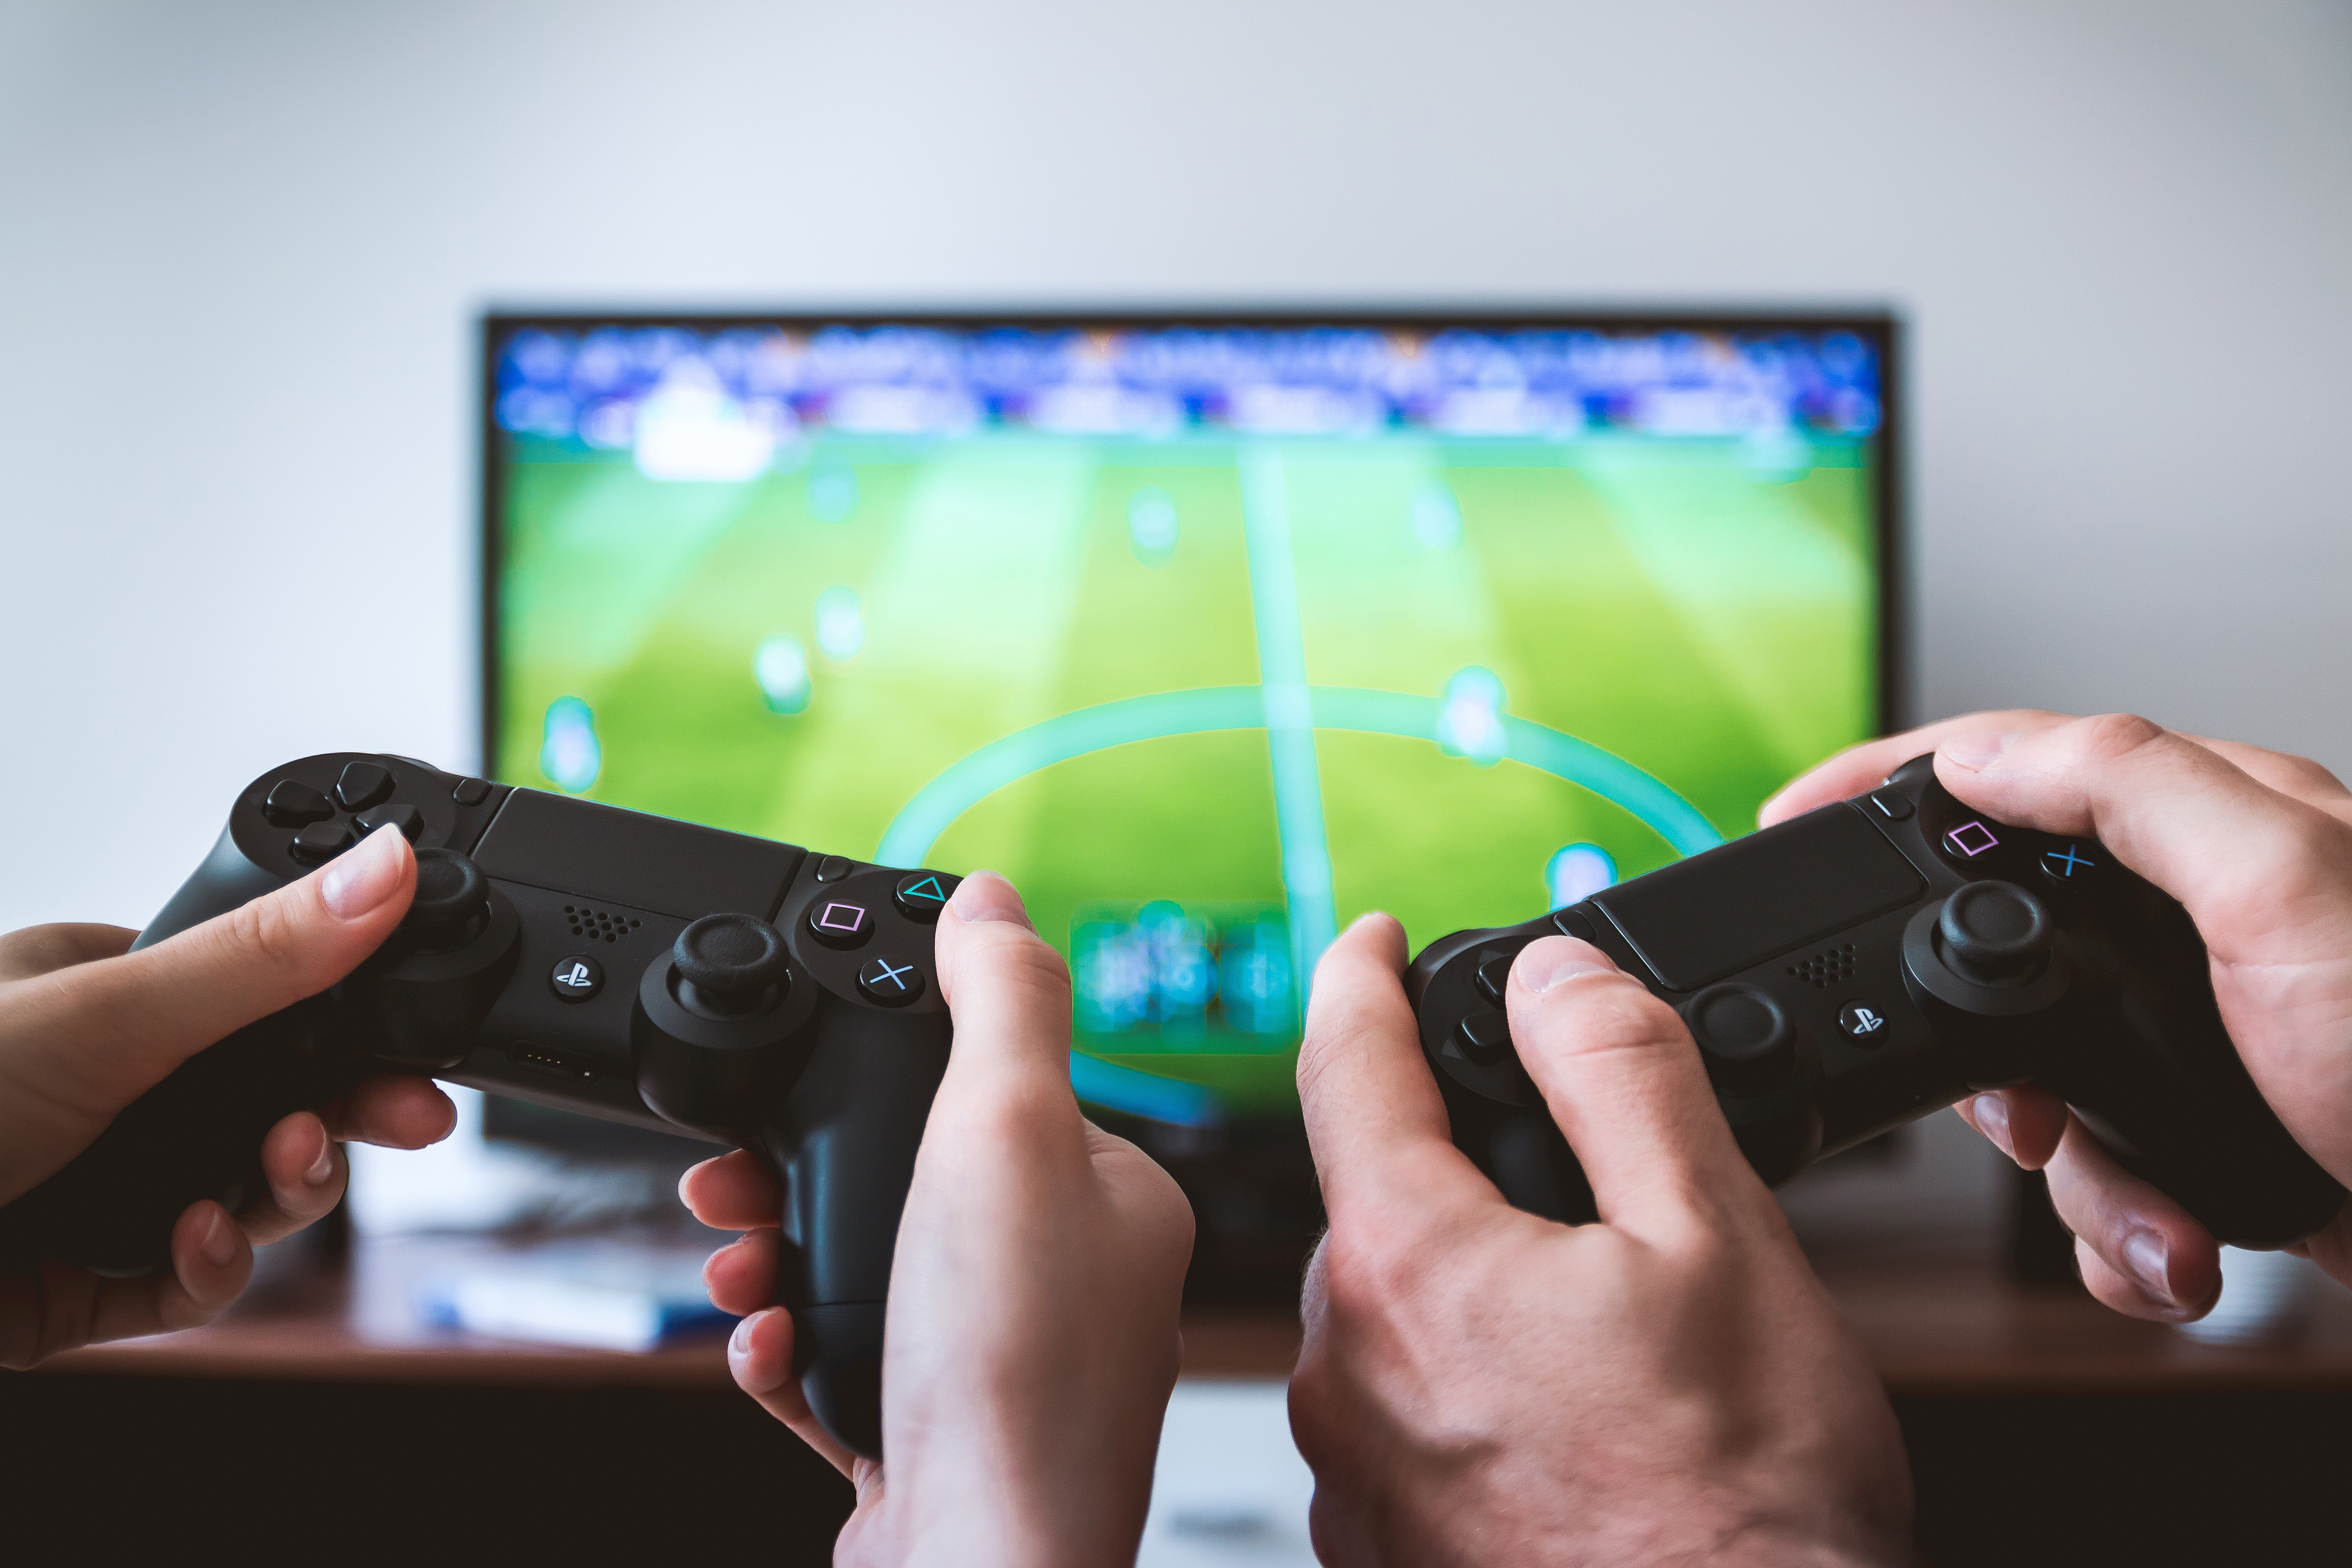 Tips For Buying Video Game Accessories